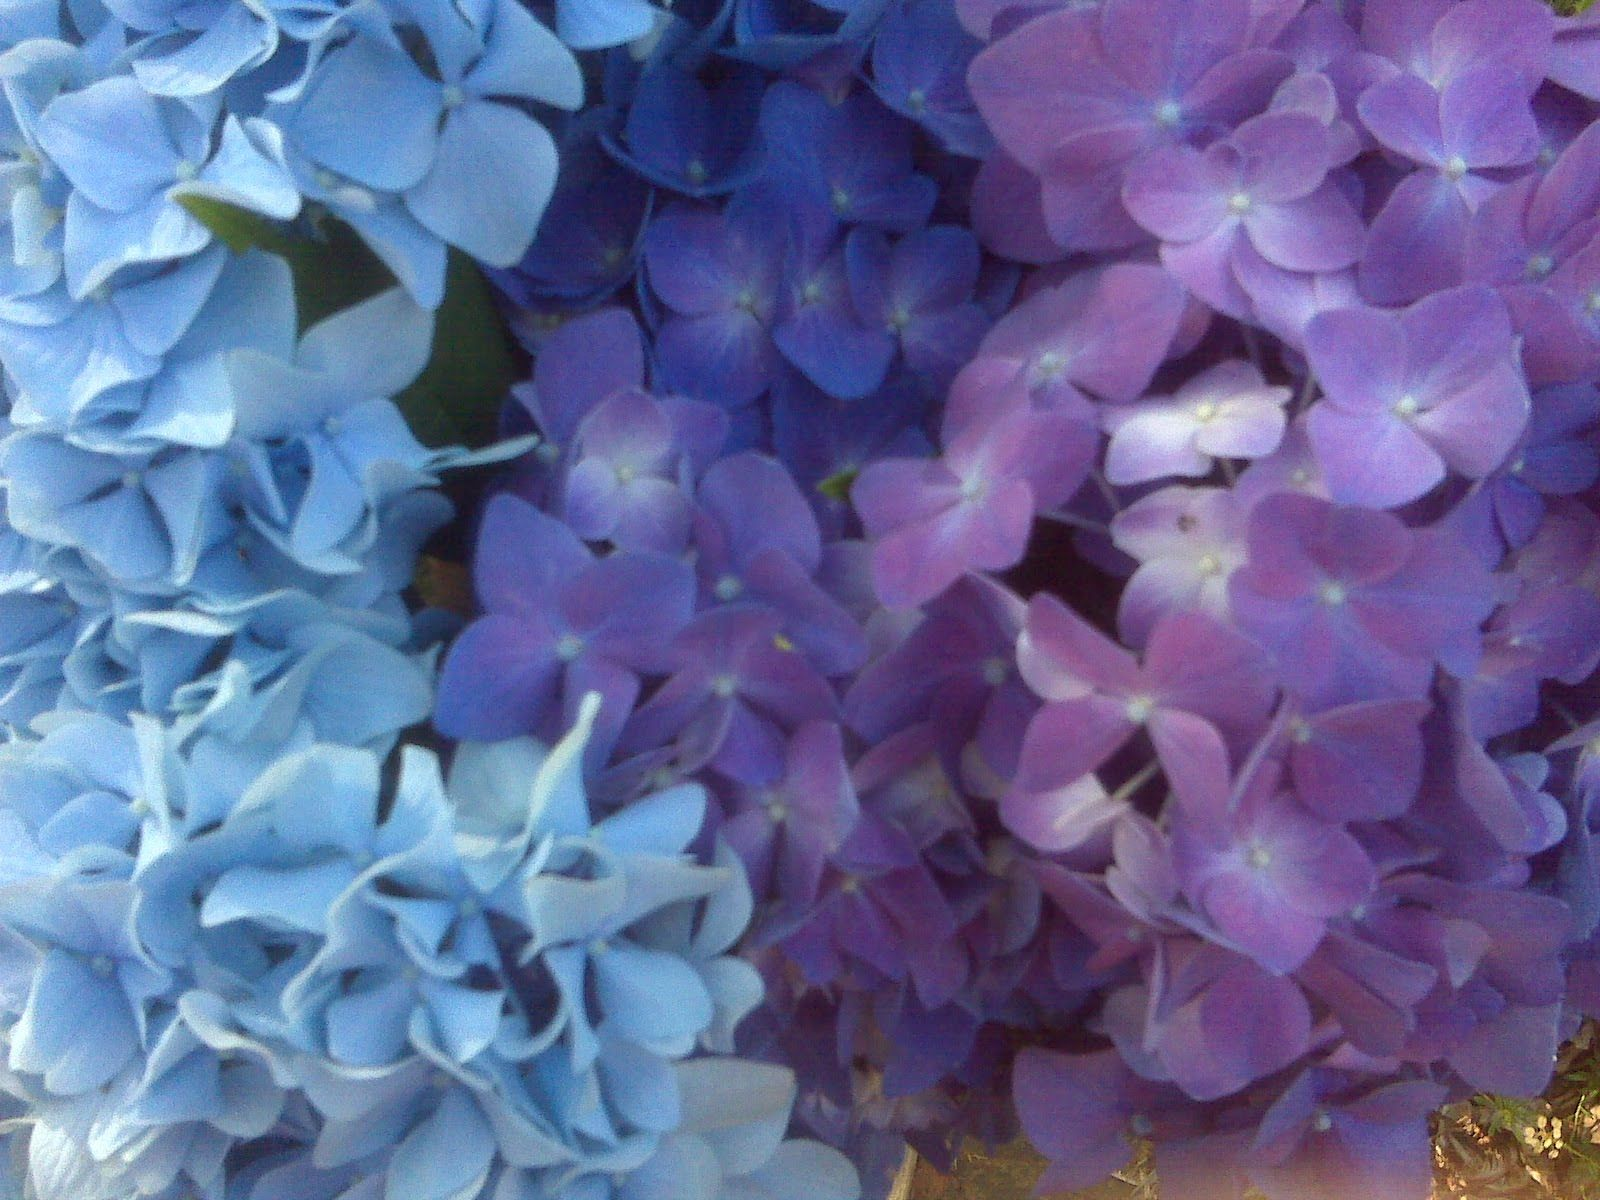 Purpleblue hydrangeas with lavendar boquet for weeks now purple blue wedding colors purple and blue flowers blue flowers izmirmasajfo Image collections